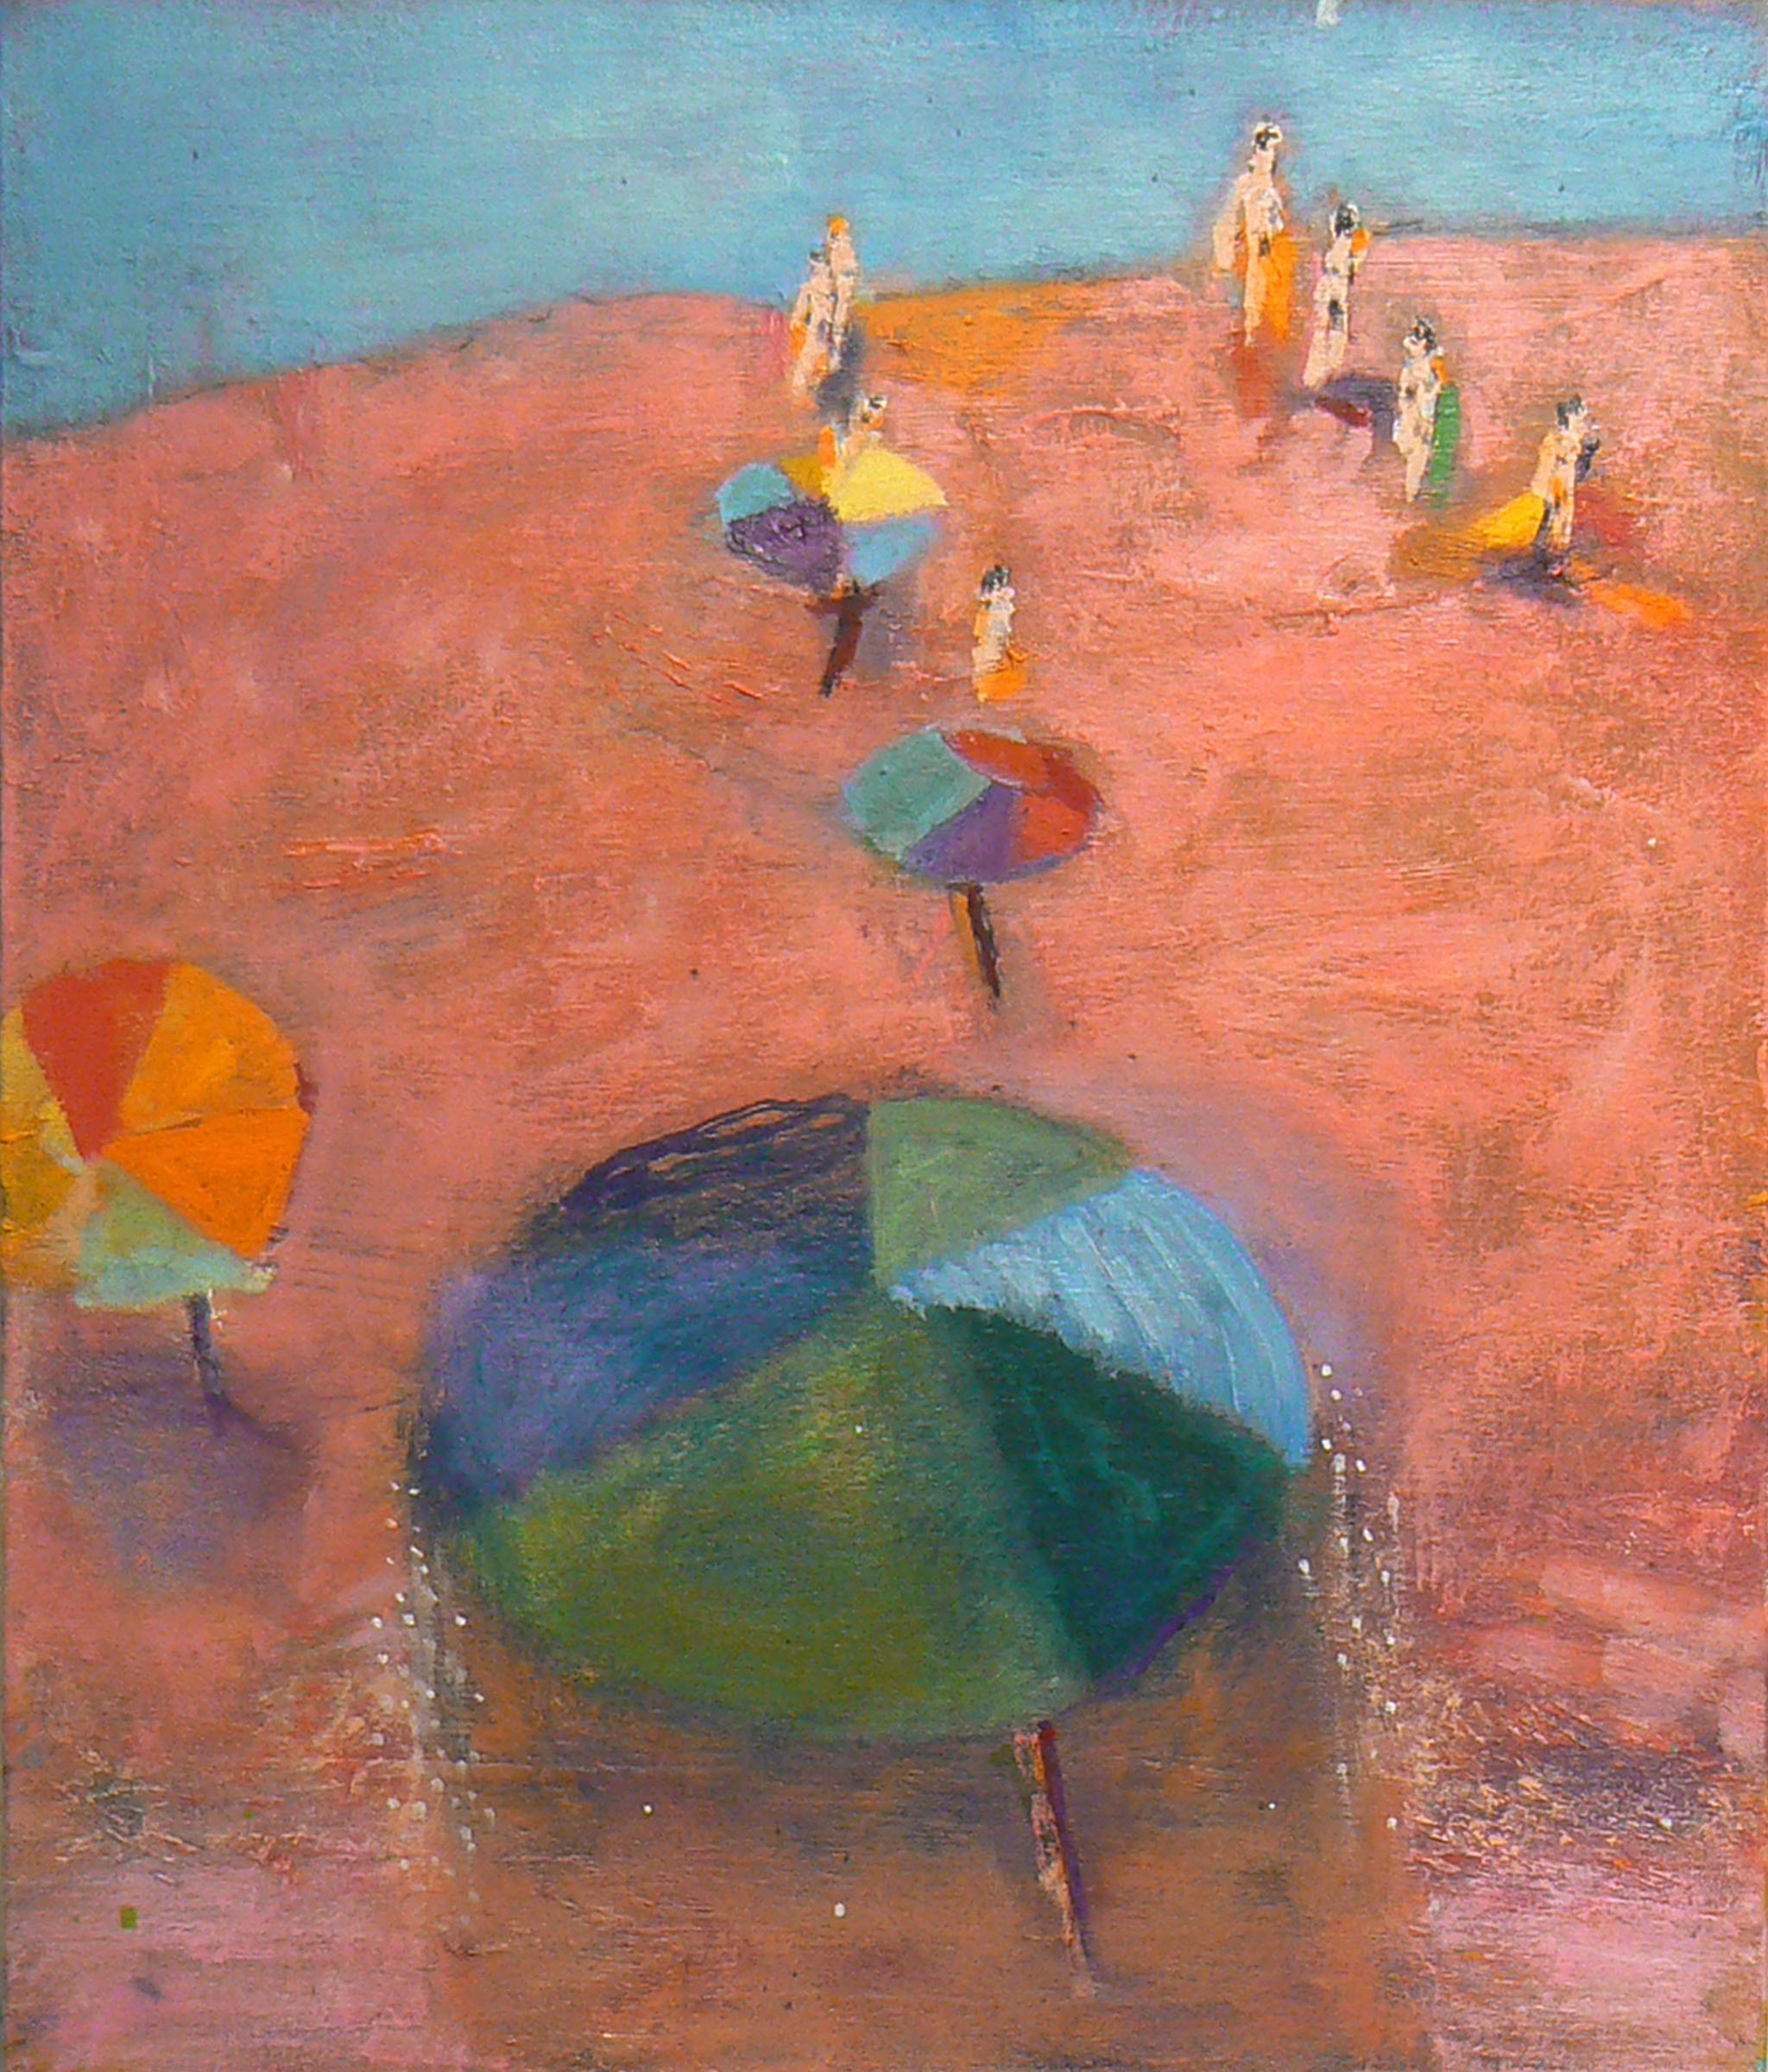 Katherine Bradford, March to Sea, 2009-2010, oil on canvas, 20h x 17w in.